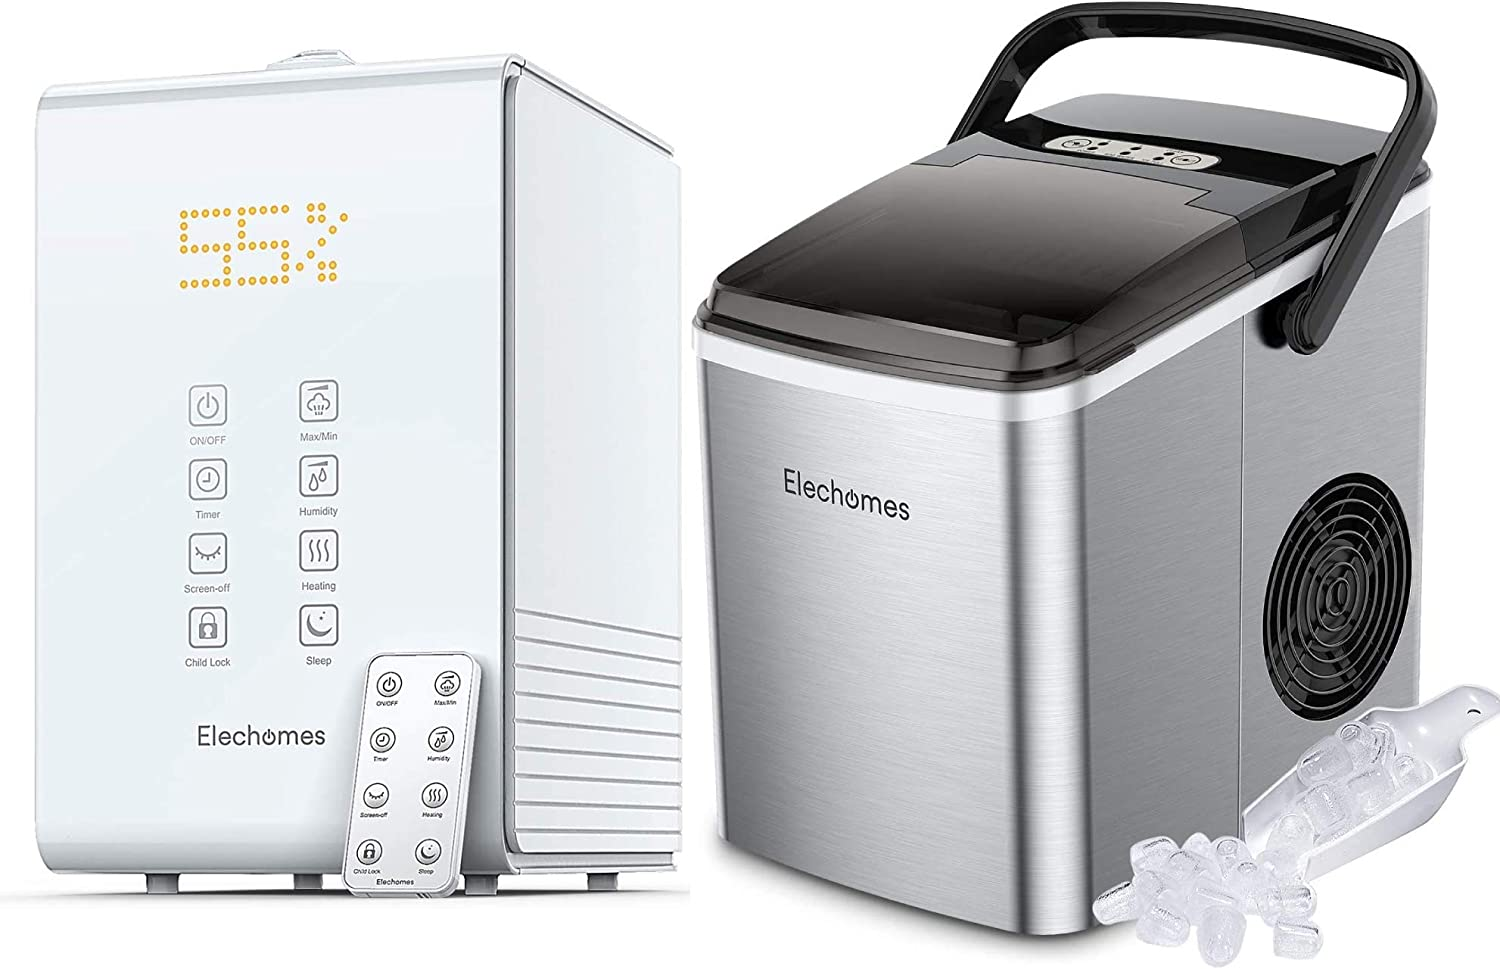 Elechomes SH8820 Warm and Cool Mist Humidifiers and Elechomes Countertop Ice Maker with Handle Bundle